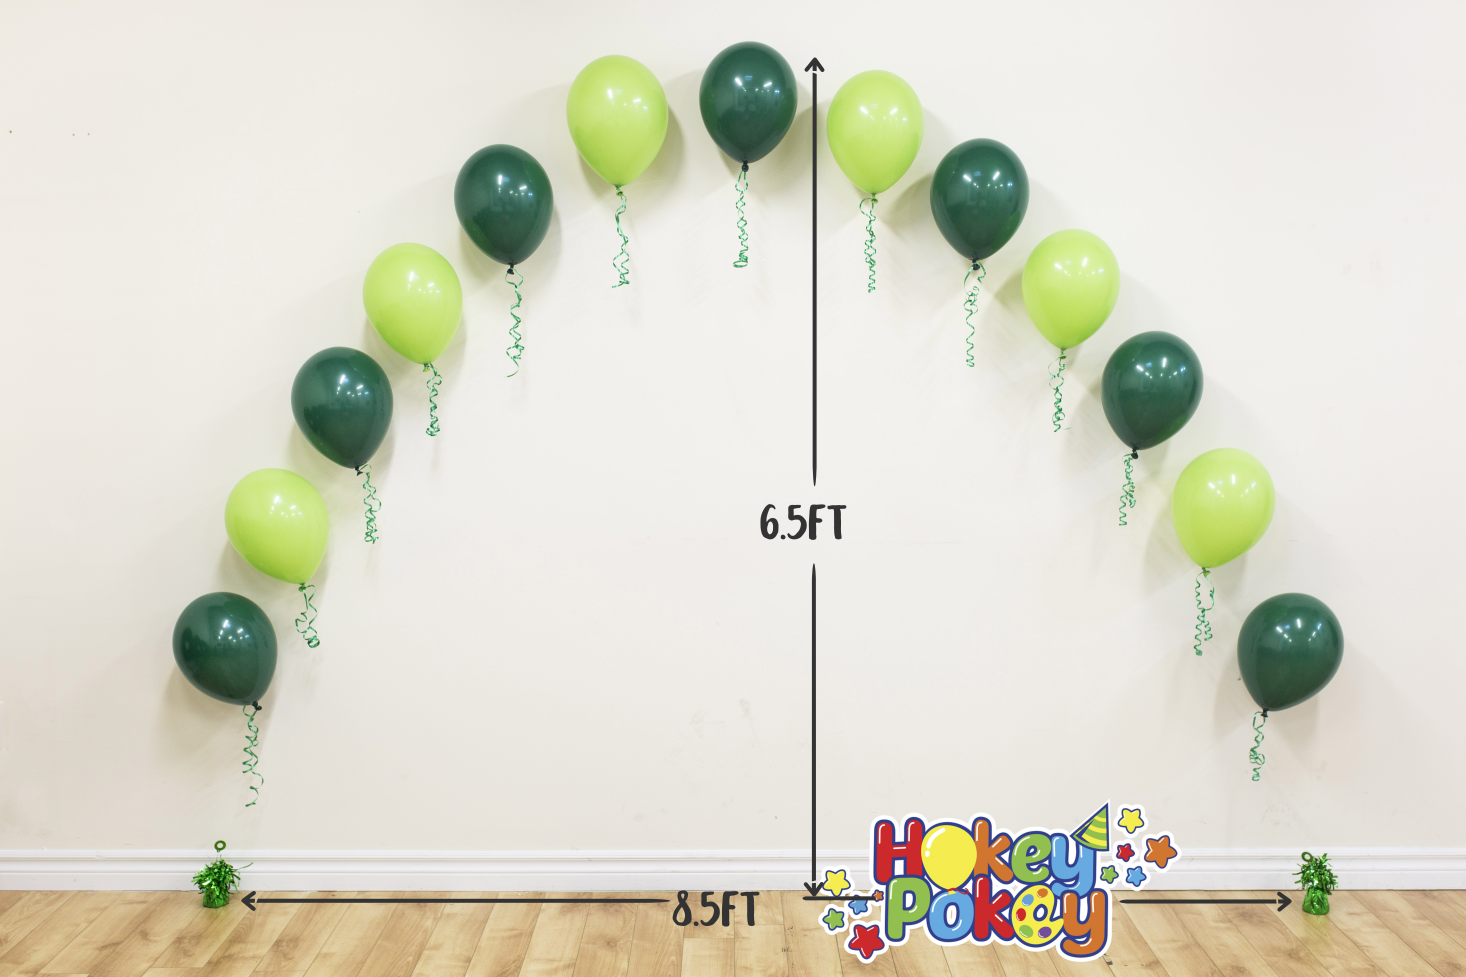 Picture of String of Pearl Arch - 8.5Ft (helium inflated)